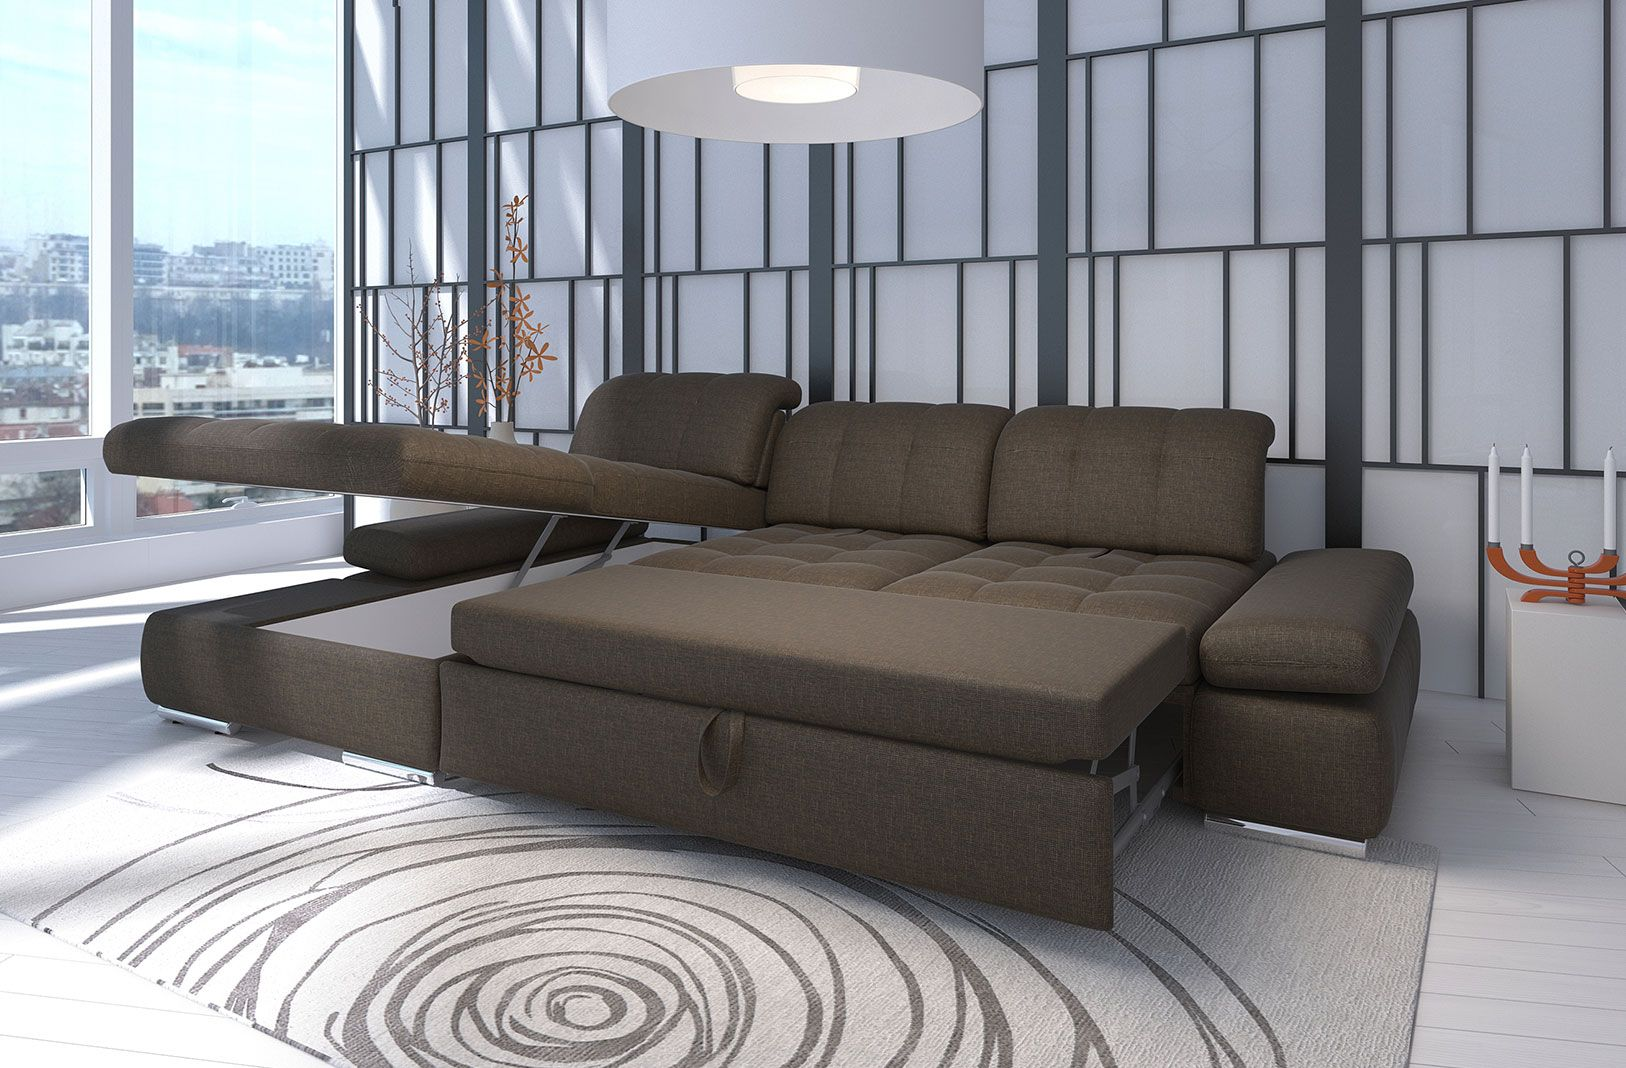 Alpine Sectional Sofa : Sleeper with Storage | Sectional ...